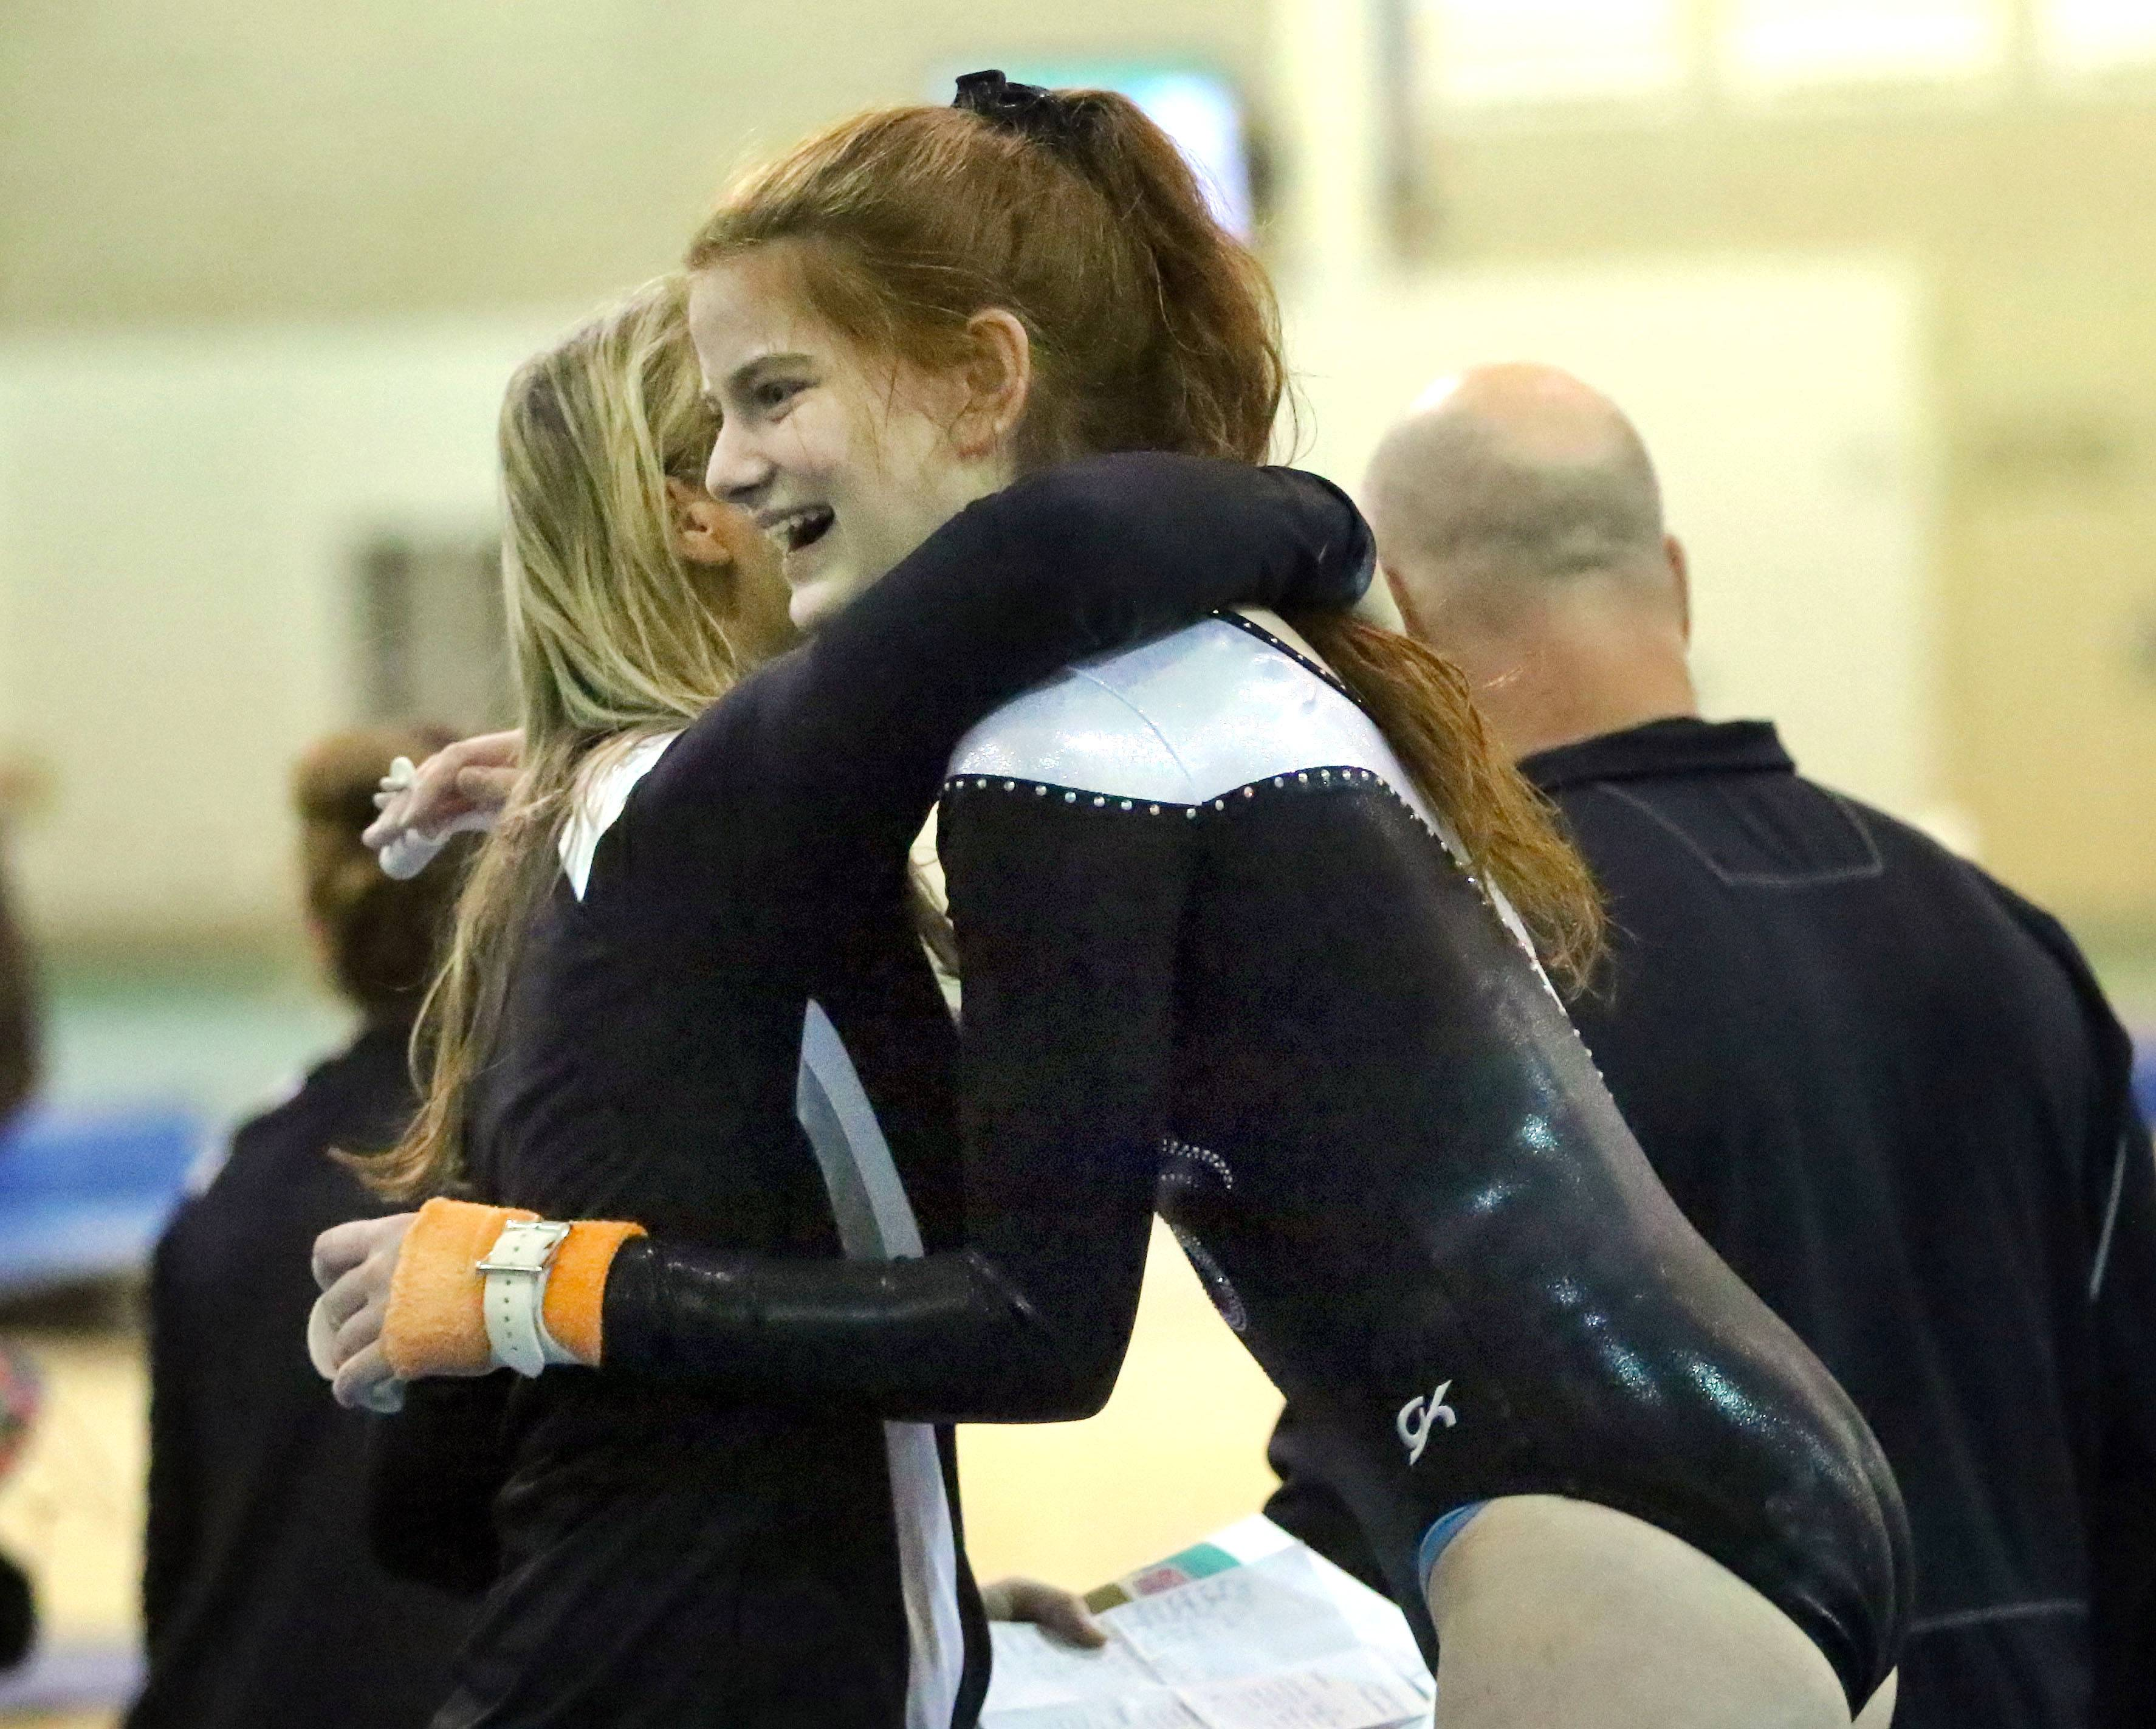 Libertyville's Constance Zanze gets a hug from coach Tiffany Owens after her bars routine Wednesday at Stevenson.